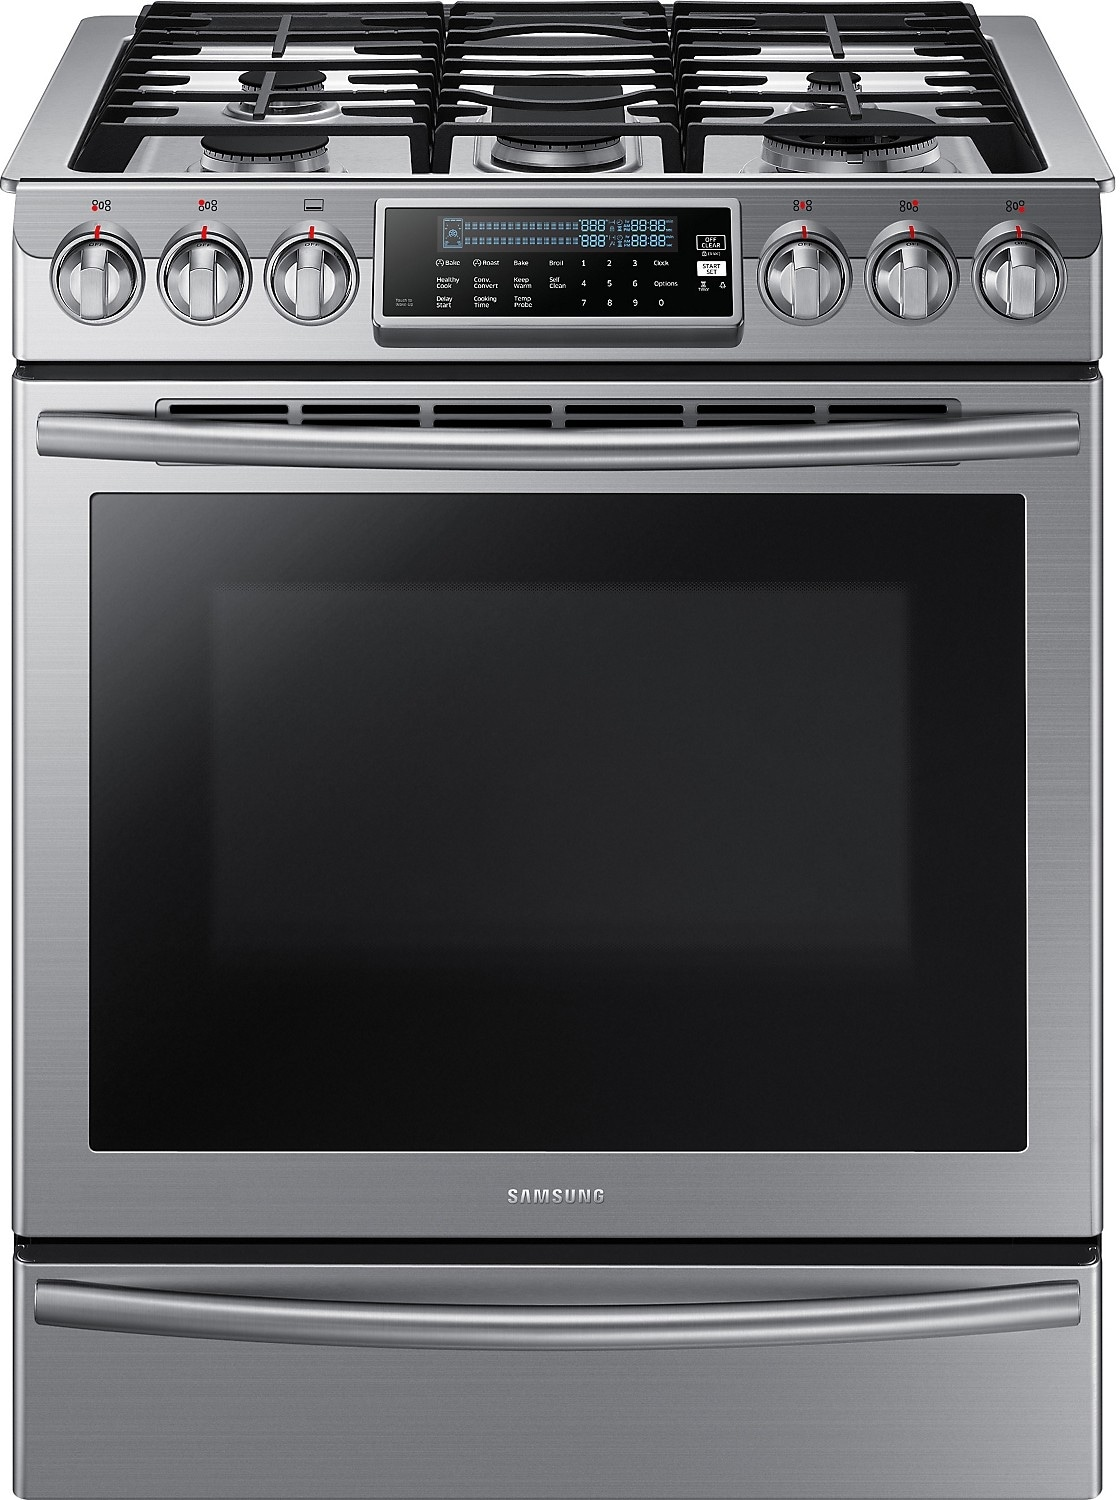 Cooking Products - Samsung 5.8 Cu. Ft. Convection Slide-In Gas Range – Stainless Steel